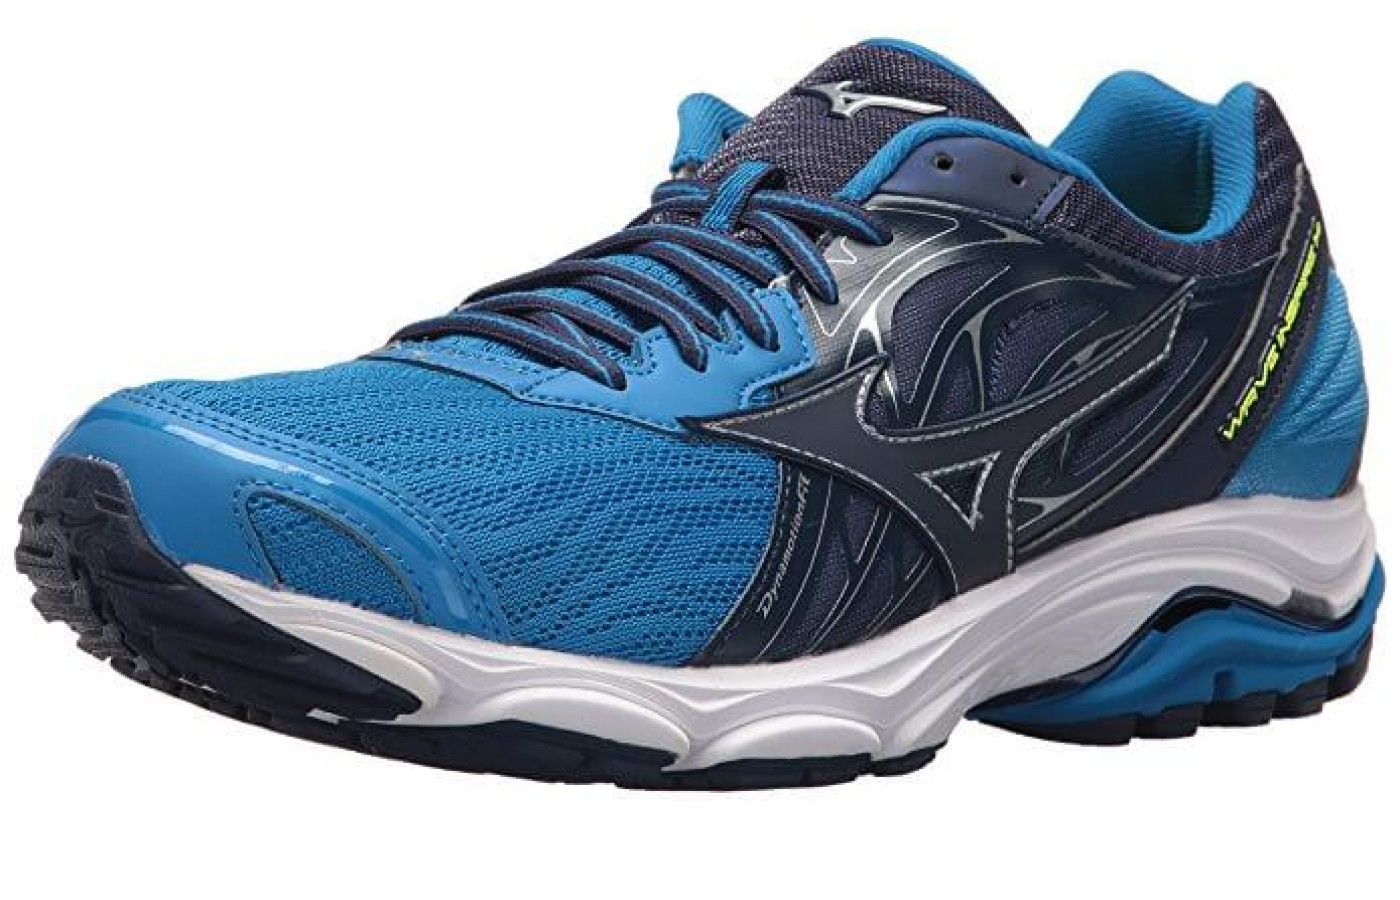 891f17d8b8b4 mizuno wave inspire 10 pronation | ventes flash